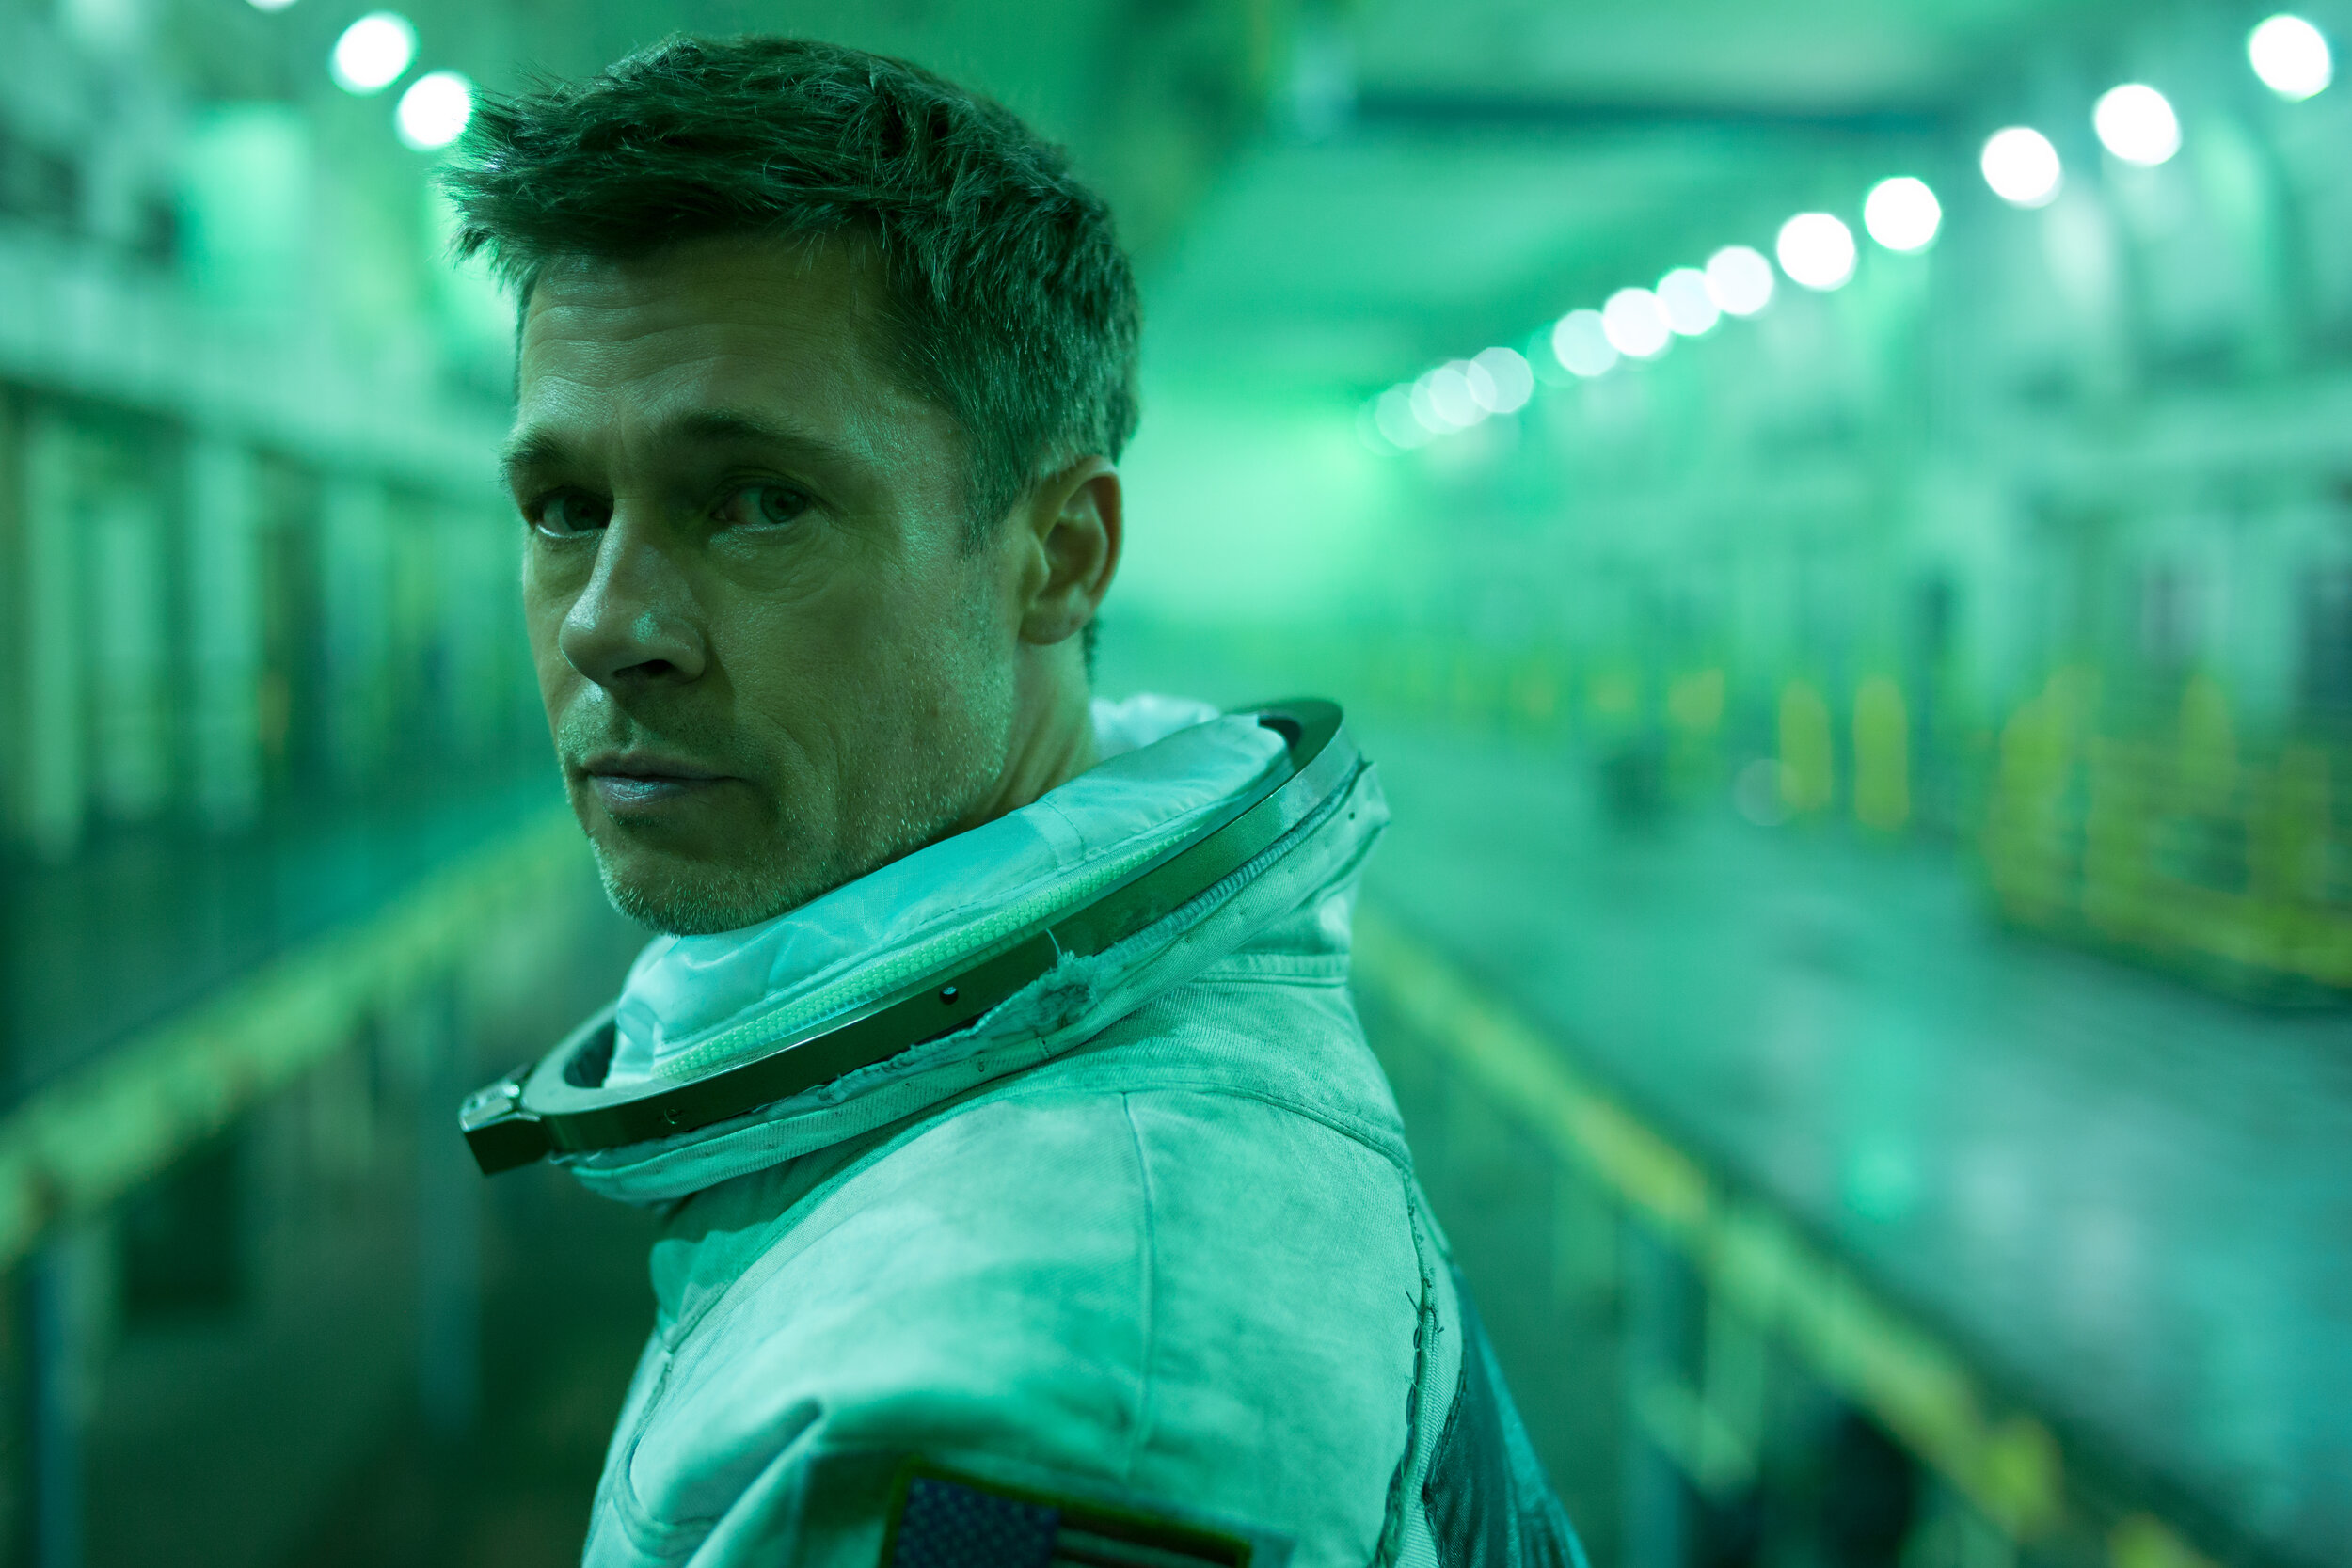 Brad Pitt is an astronaut traversing the solar system searching for his rogue father in Ad Astra